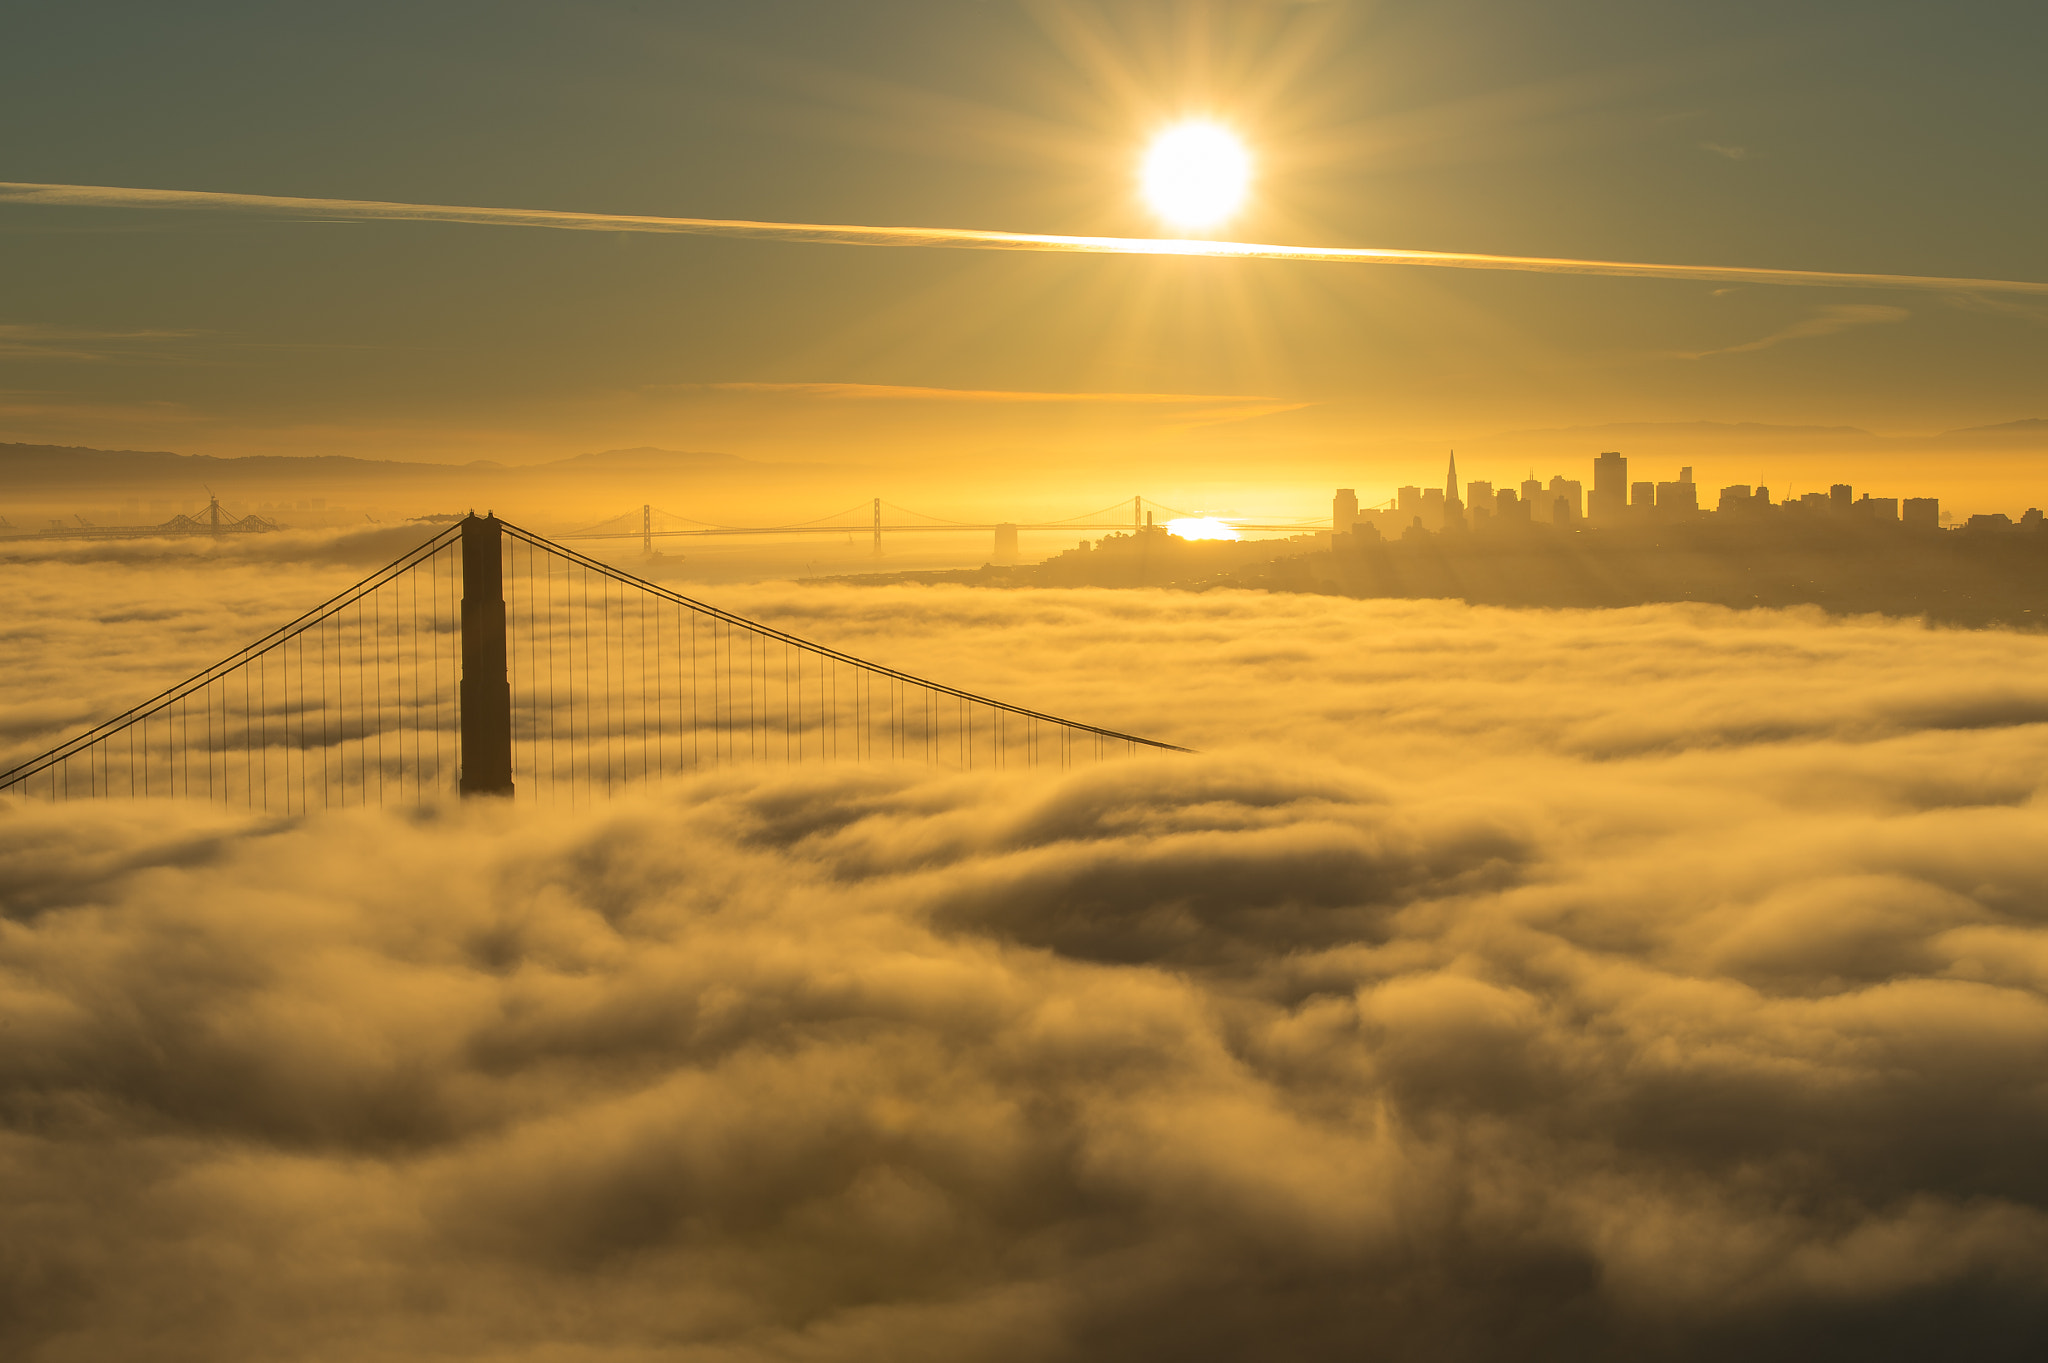 Photograph Sunrise over the Golden Gate during golden hour by Todd Draper on 500px